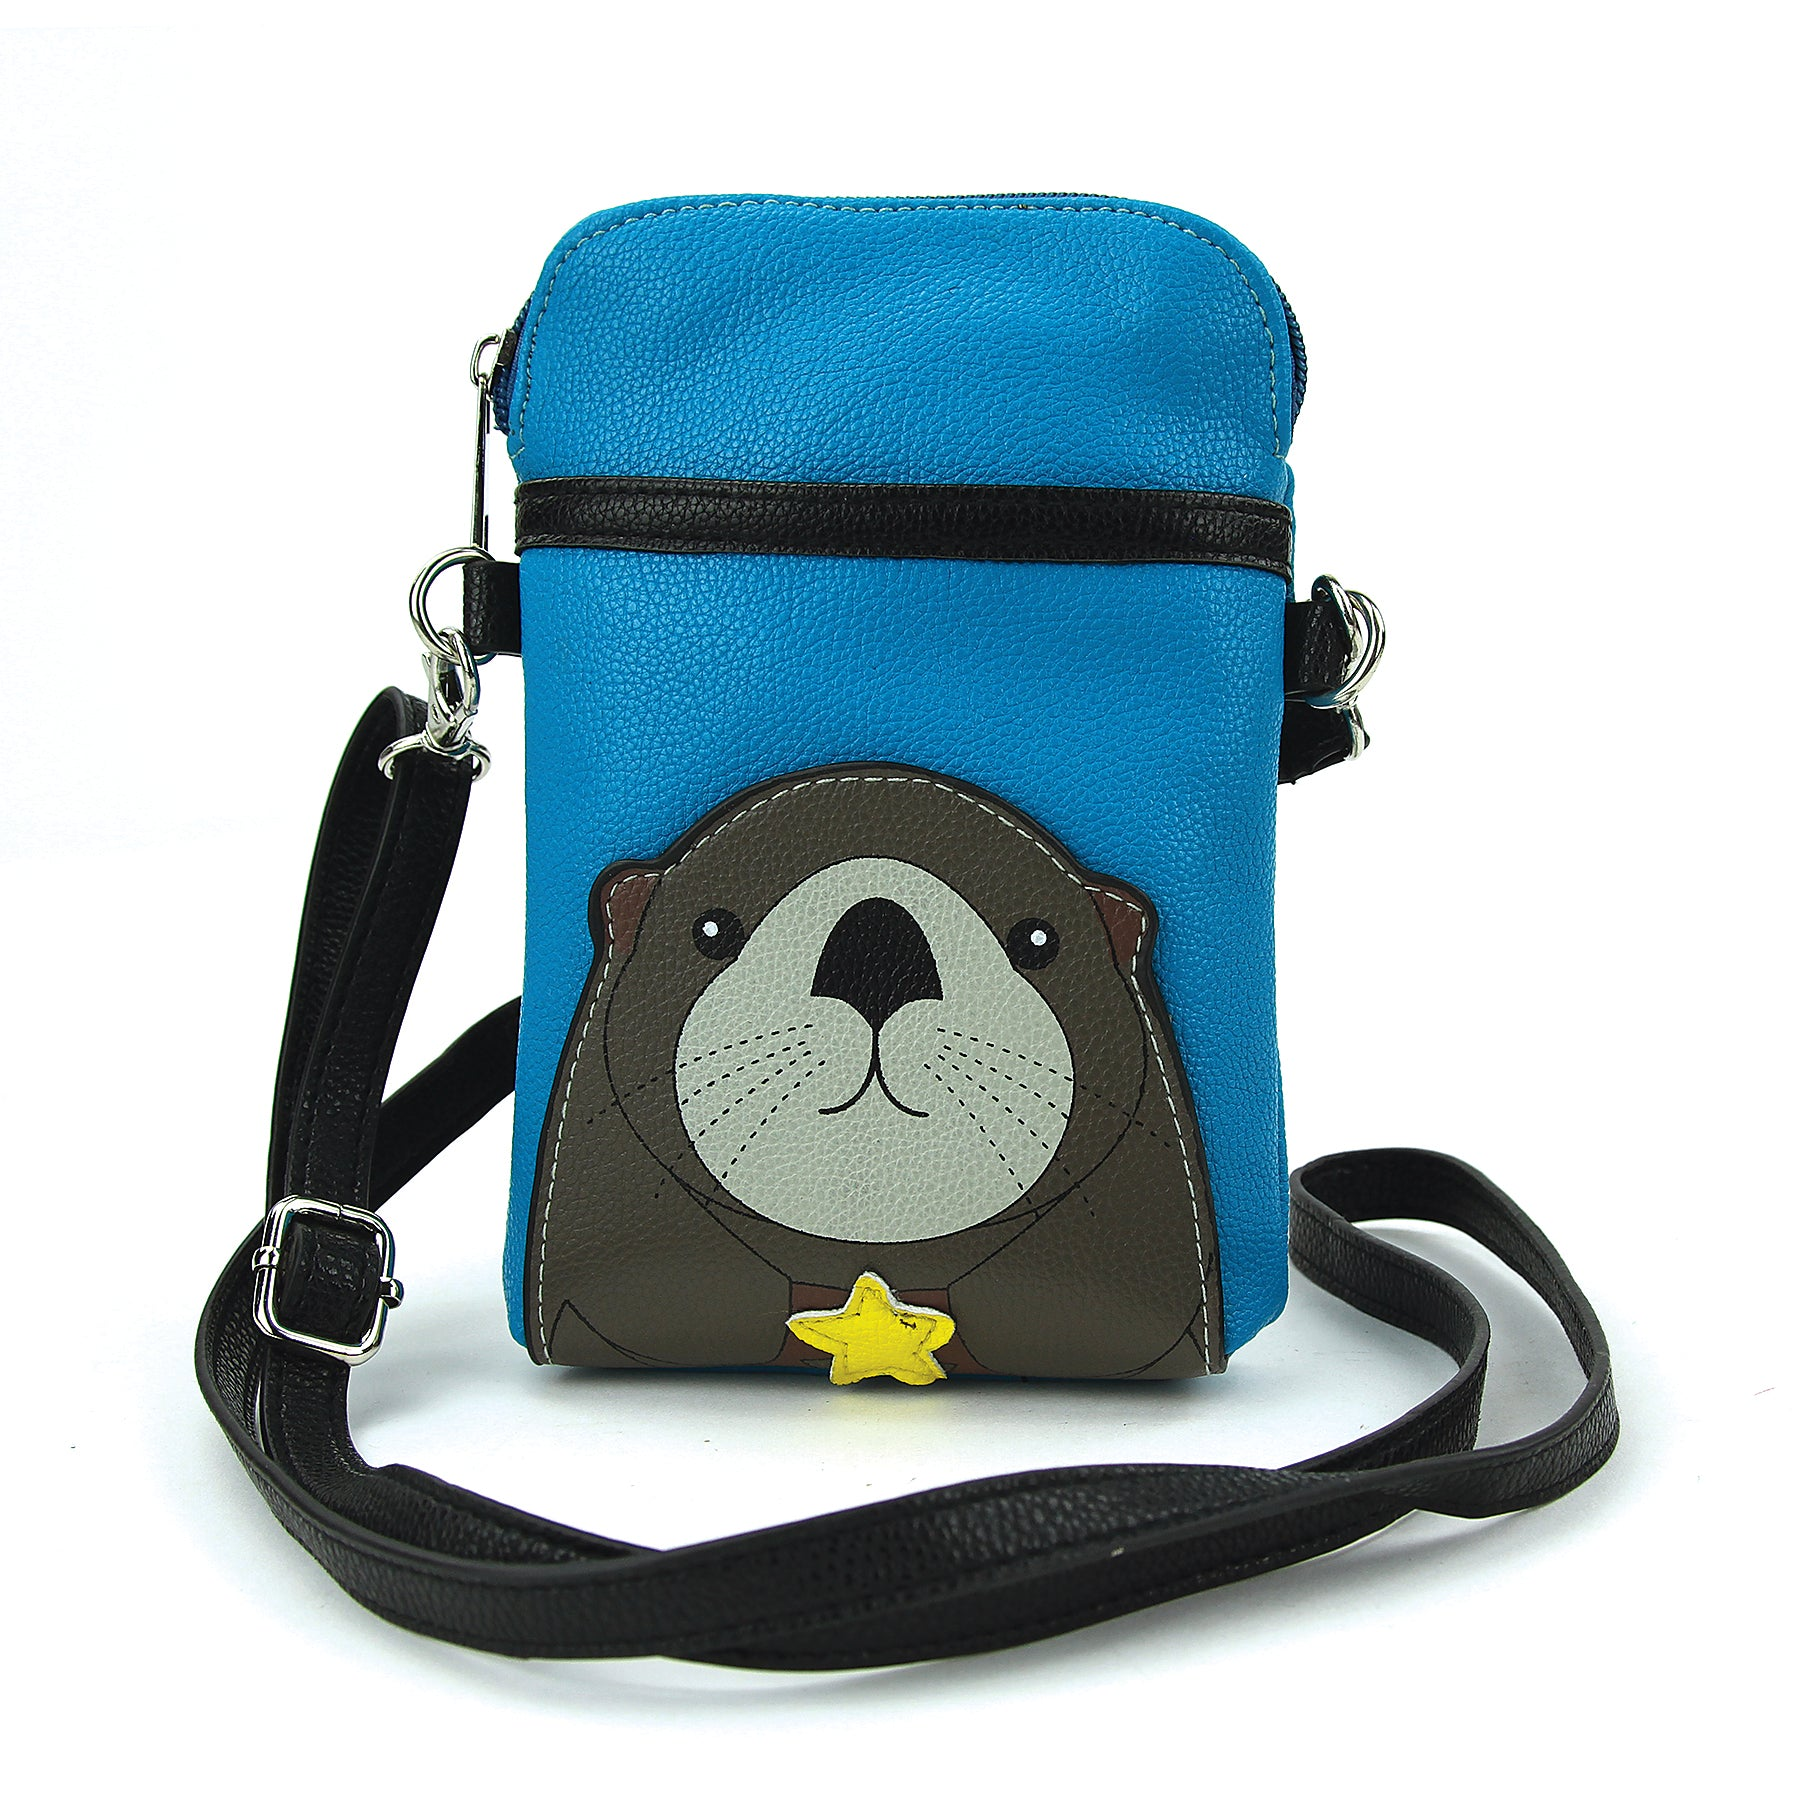 Sea Otter Crossbody Pouch in Vinyl front view